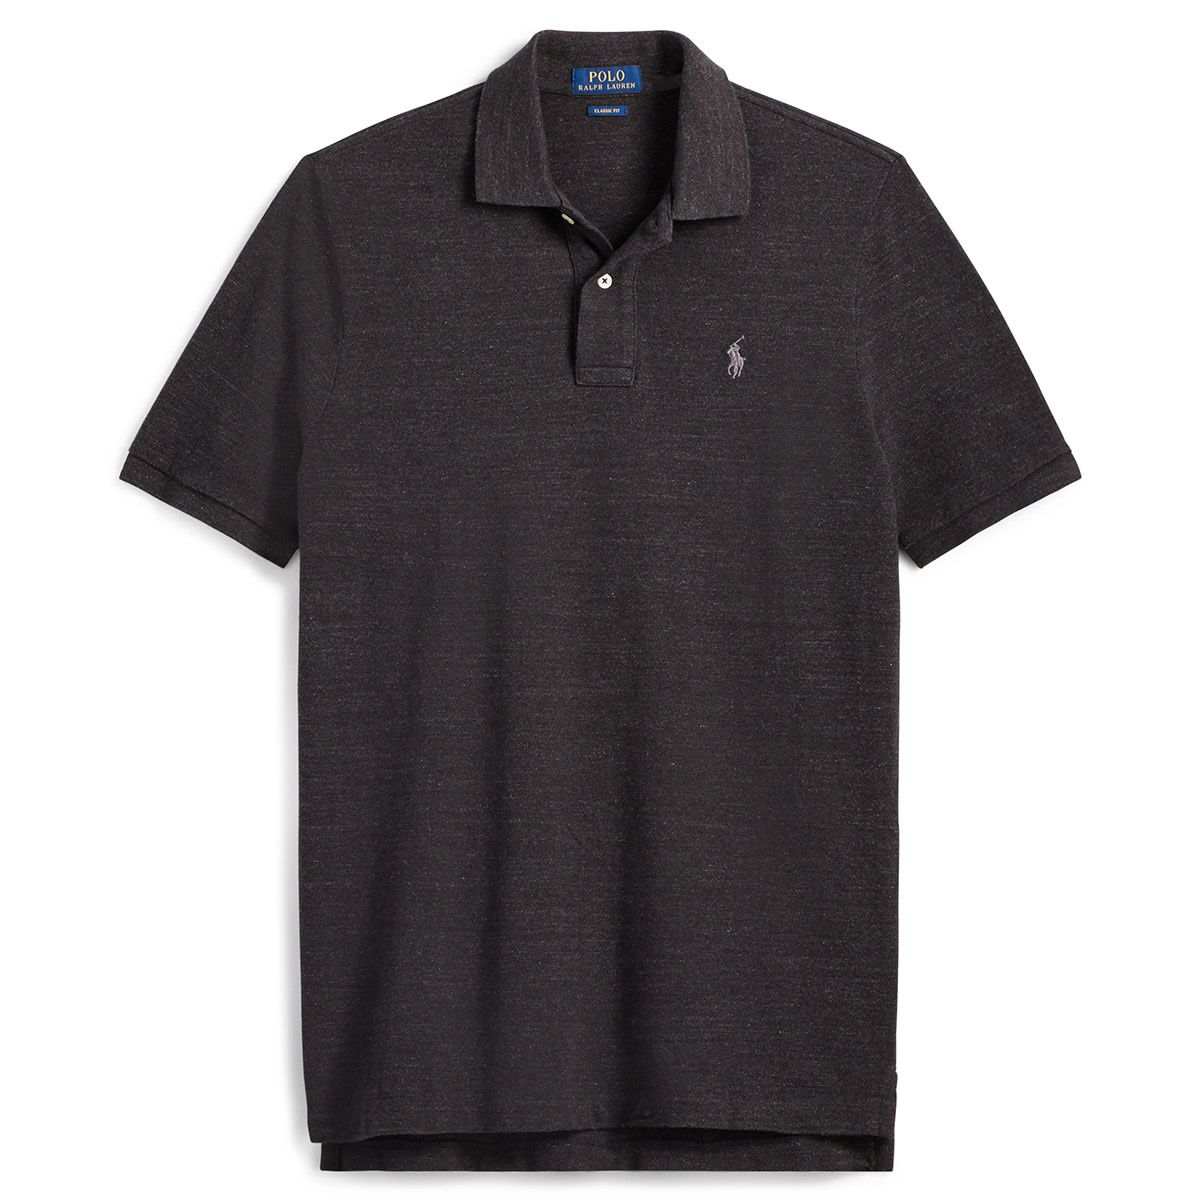 e155afec Polo Ralph Lauren Mens Polo Shirts - Macy's